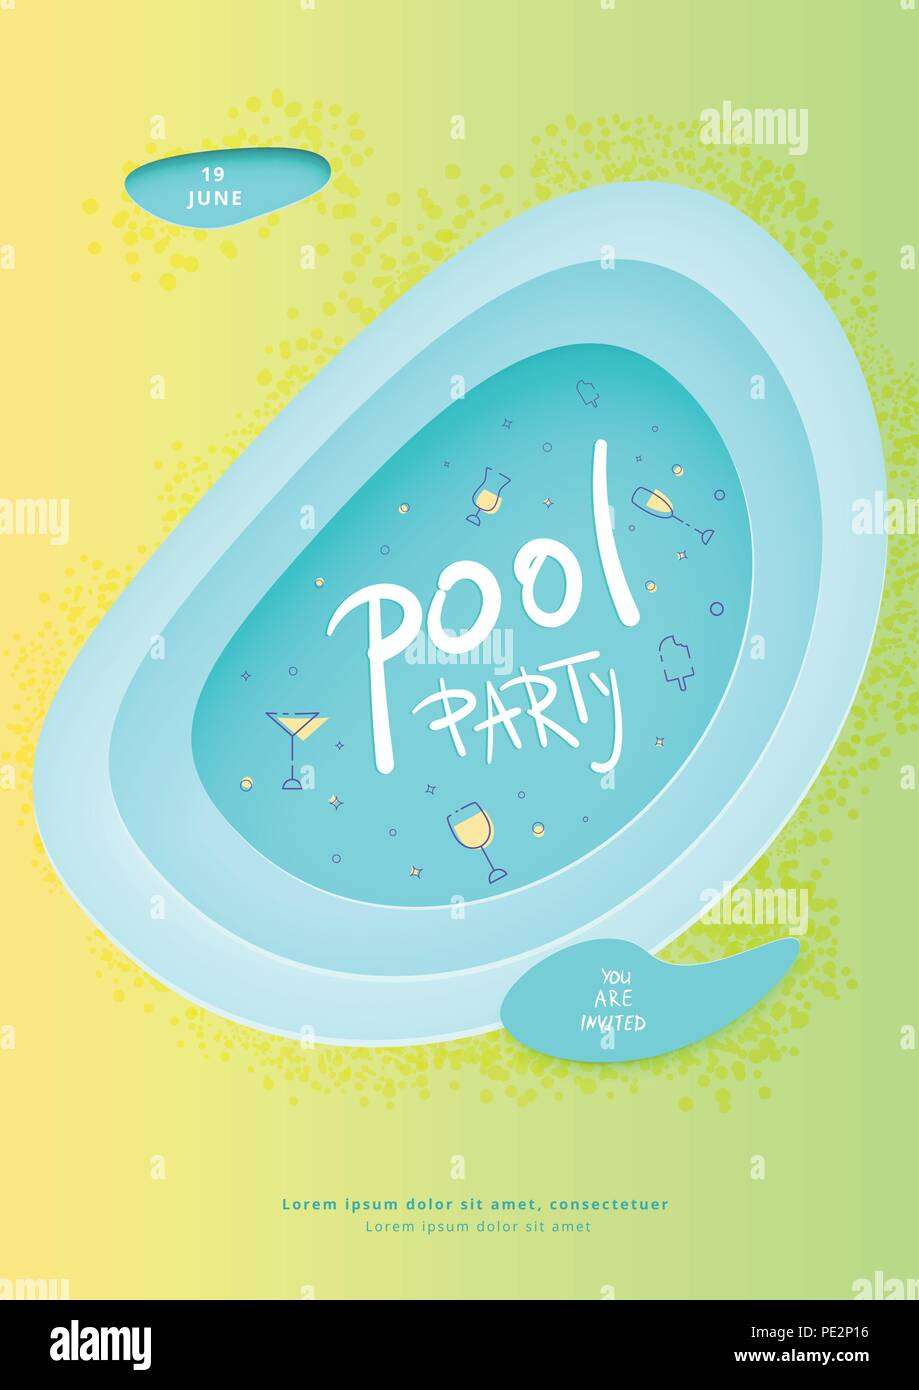 pool party vertical flyer summer celebration banner with papercut